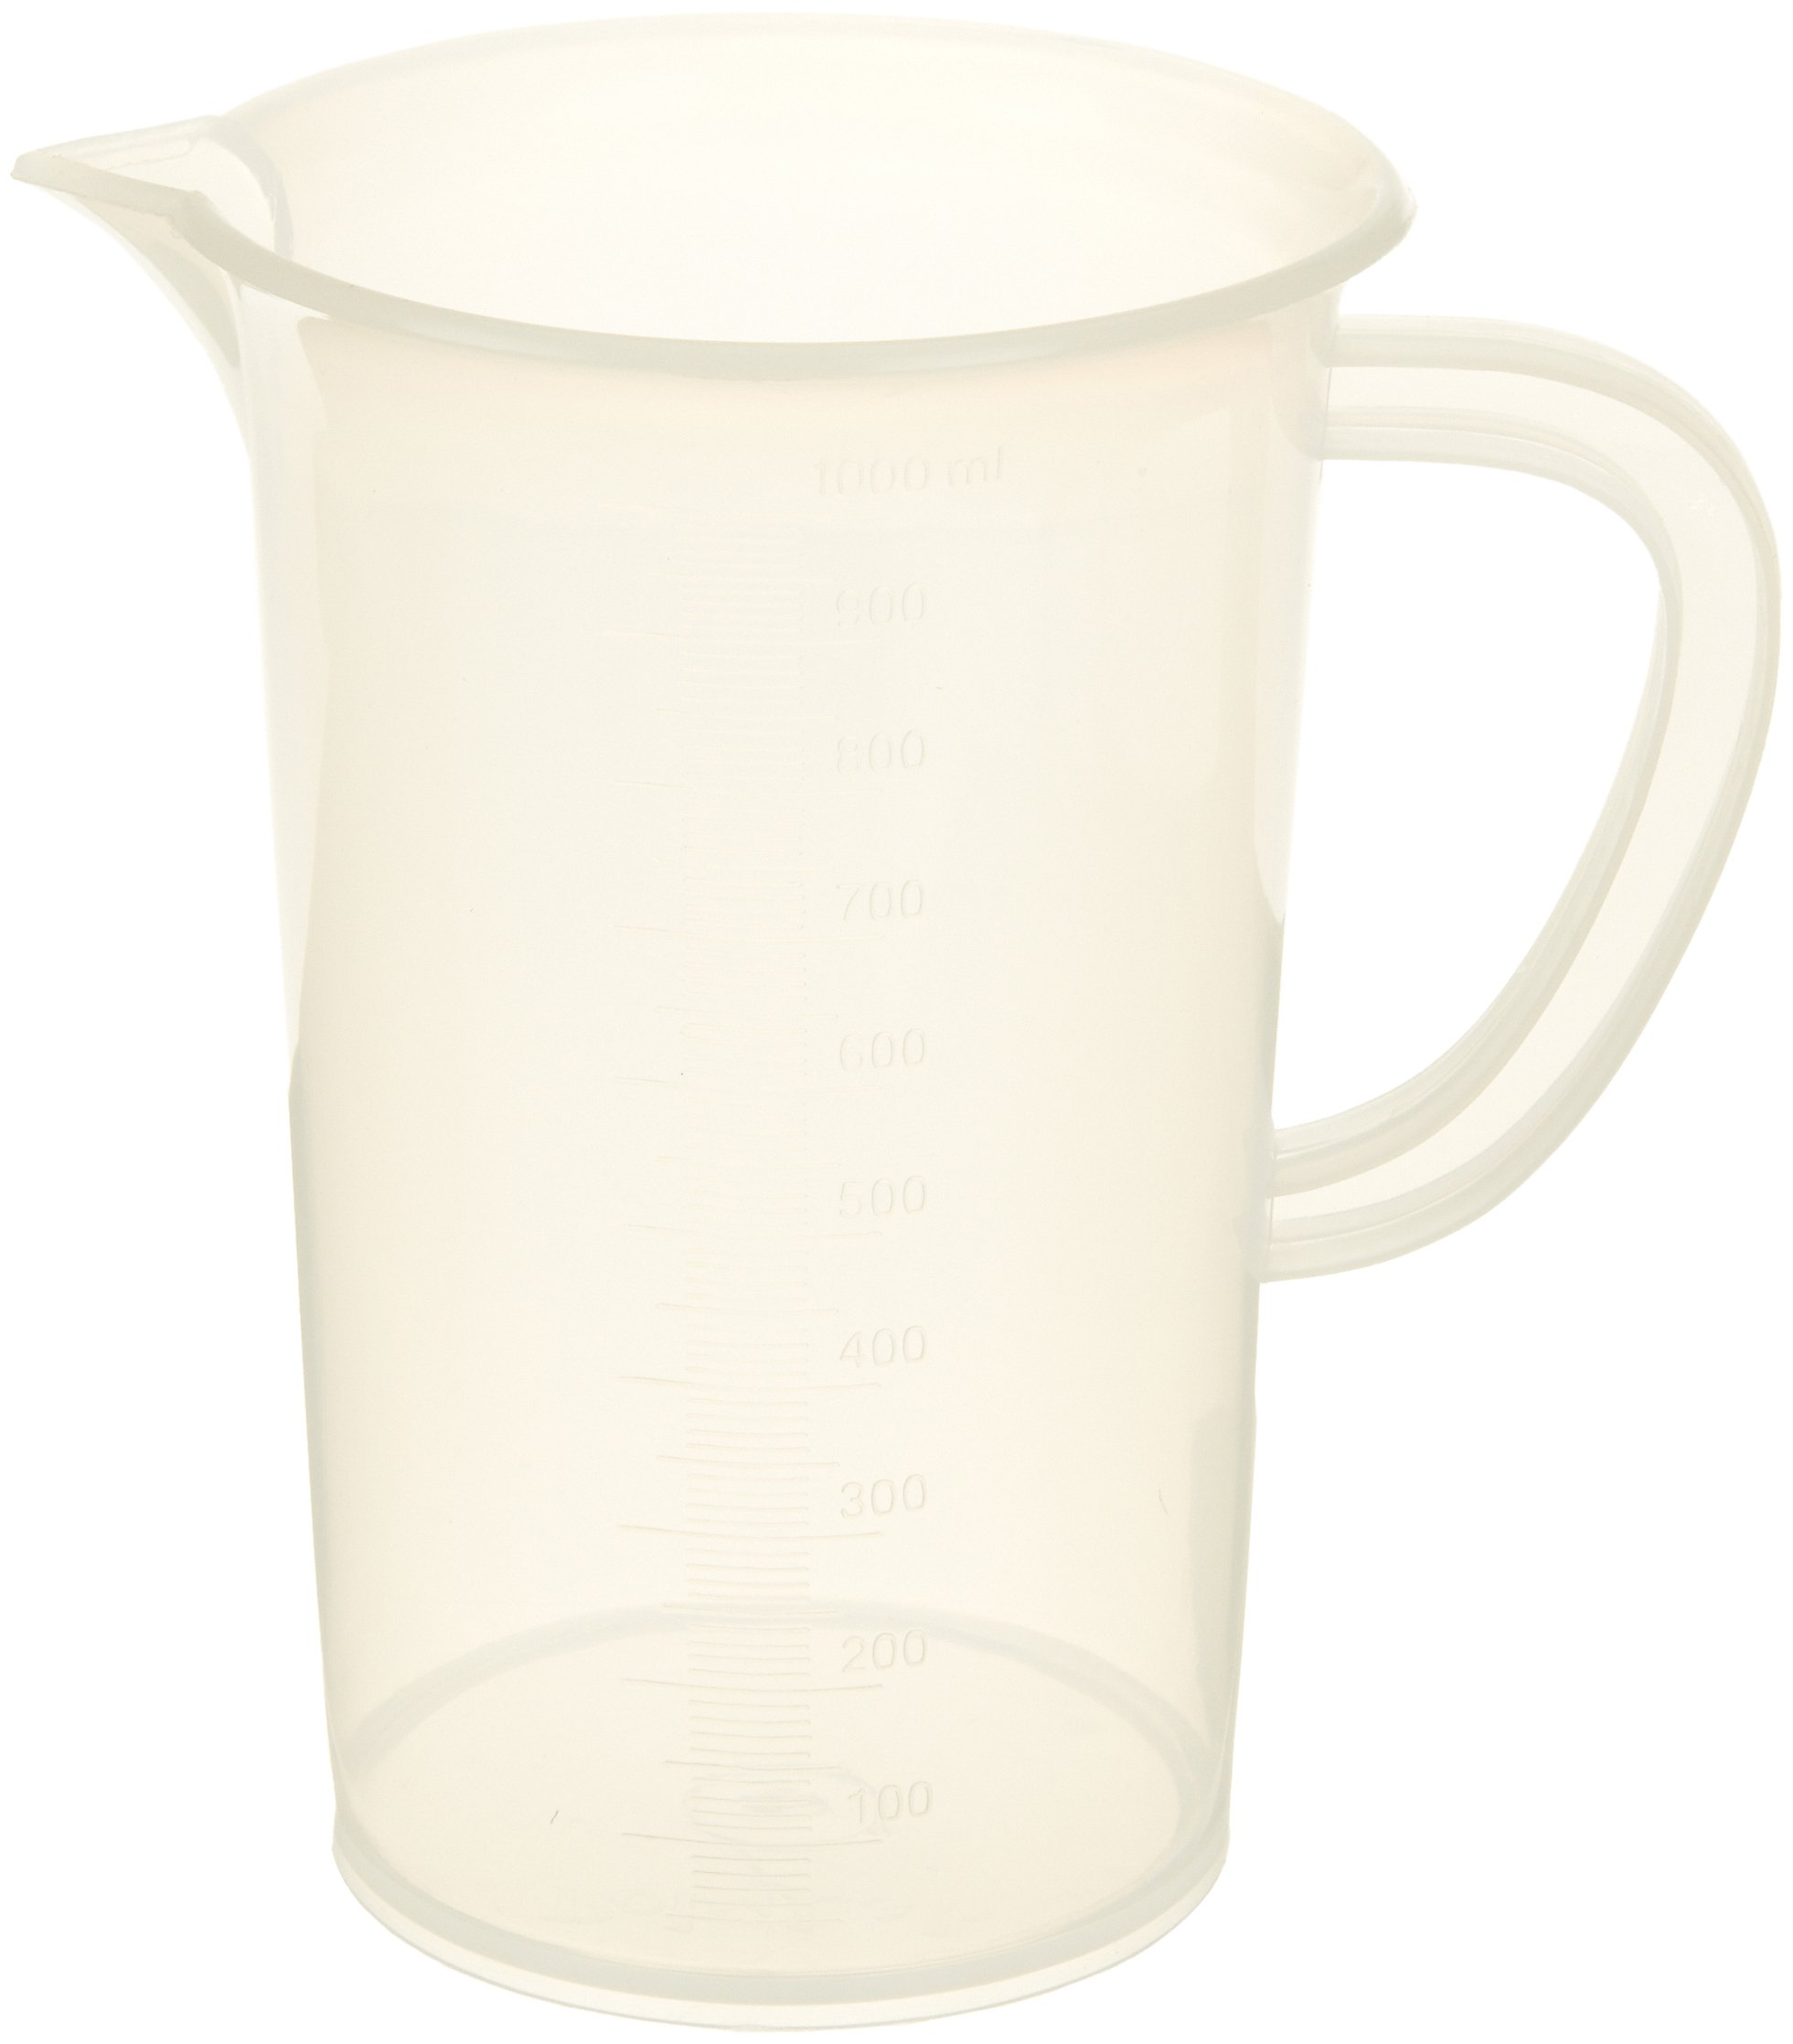 United Scientific 81103 Polypropylene Tall Form Pitchers, 1000ml Capacity (Pack of 6) by United Scientific Supplies